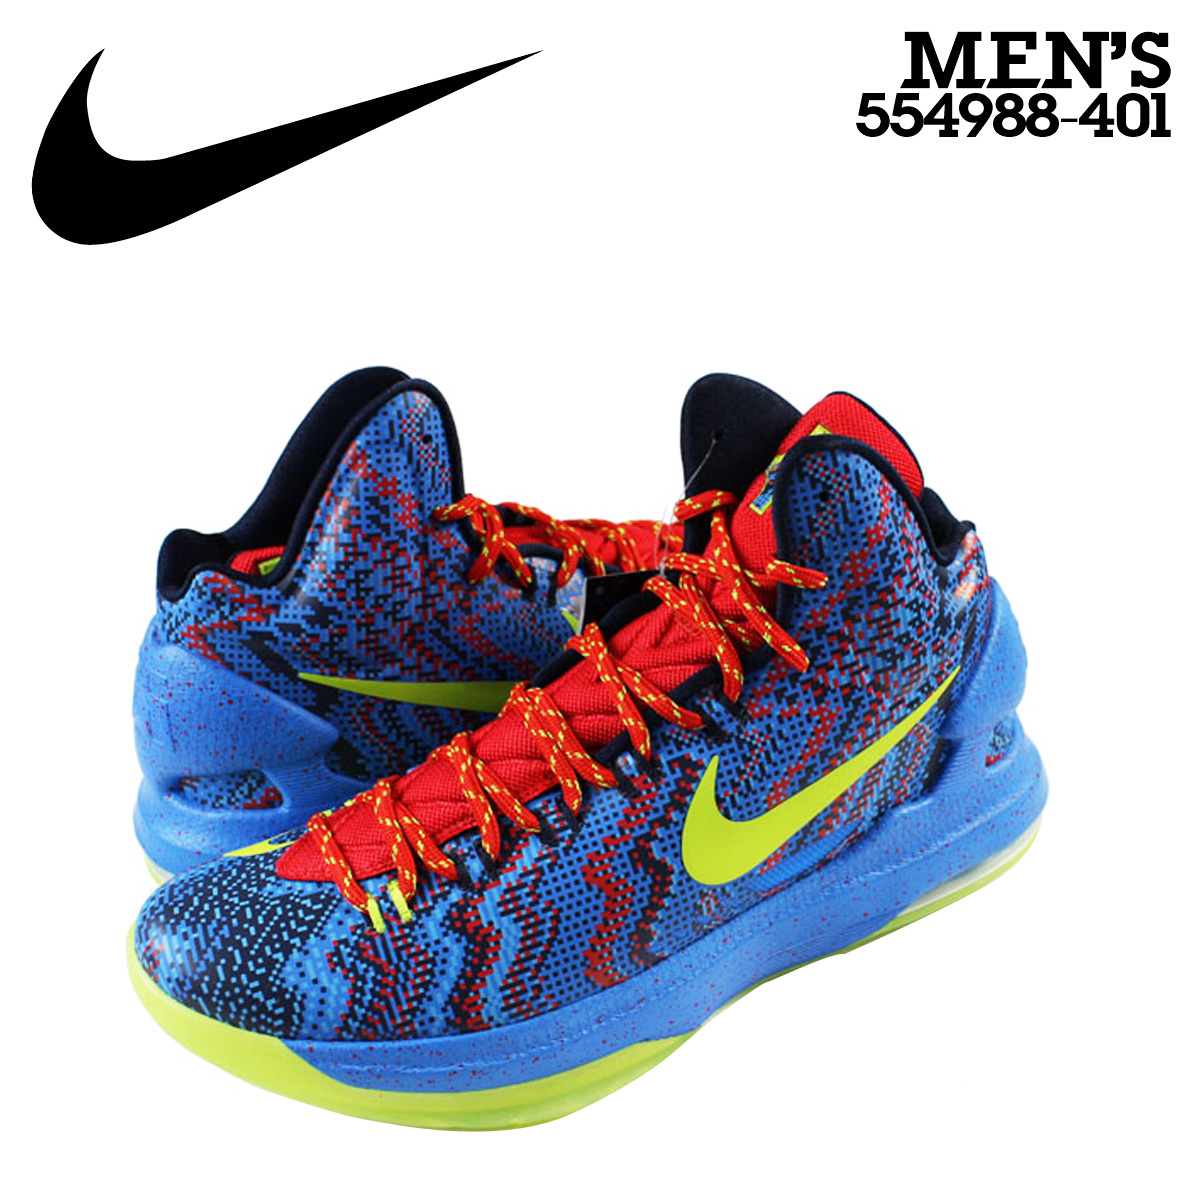 a10ab63e451d Nike NIKE zoom sneakers ZOOM KD 5 CHRISTMAS EDITION 2 K 12 Kevin Durant  Christmas 554988-401 mens blue